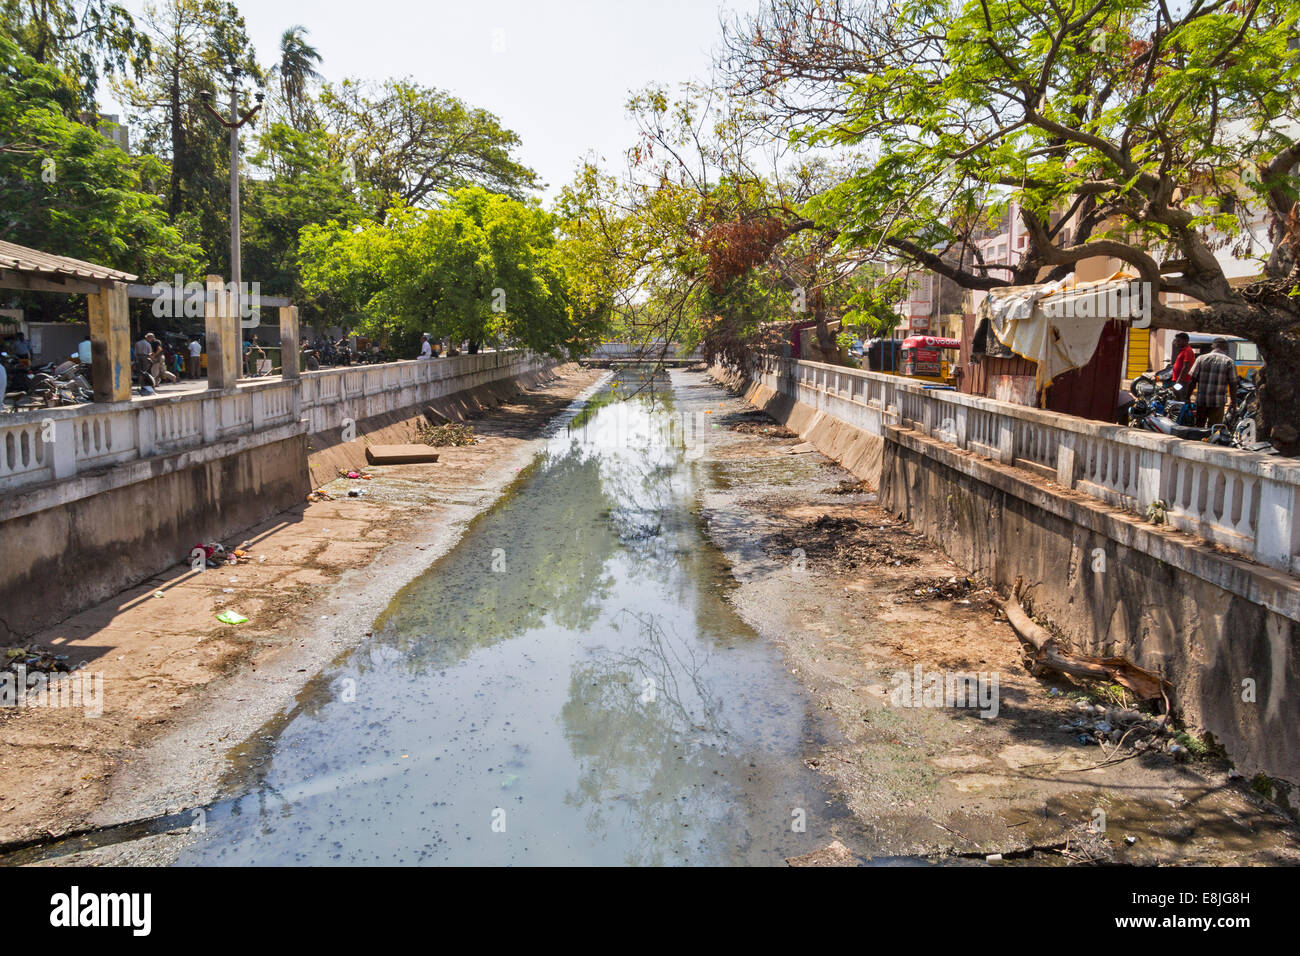 PONDICHERRY INDIA TREE LINED STREETS AND SEVERELY POLLUTED STINKING CANALS OR OPEN SEWER  IN THE CENTRE OF THE TOWN - Stock Image